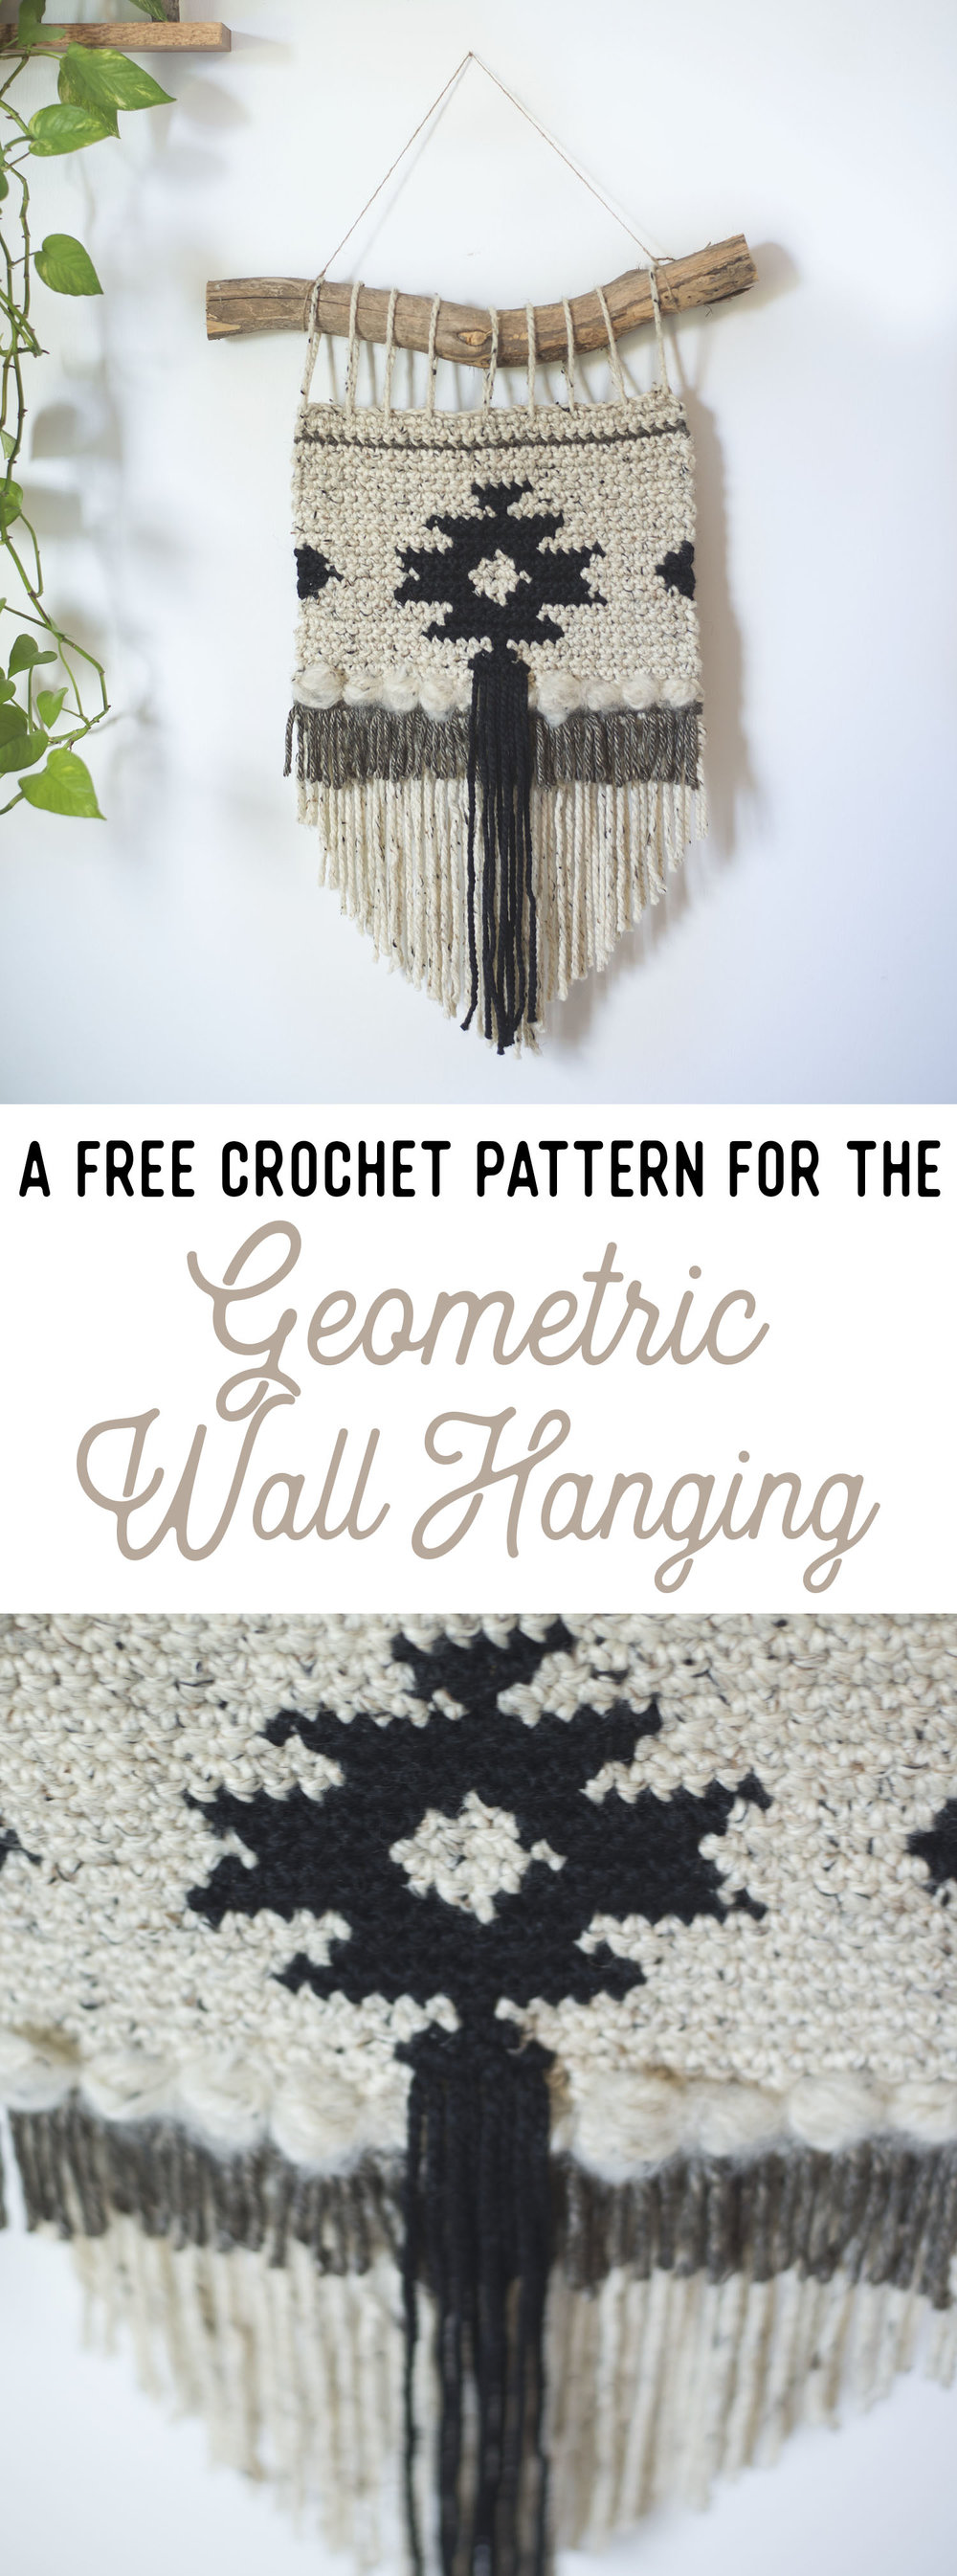 Geometric Wall Hanging | by Meg Made With Love